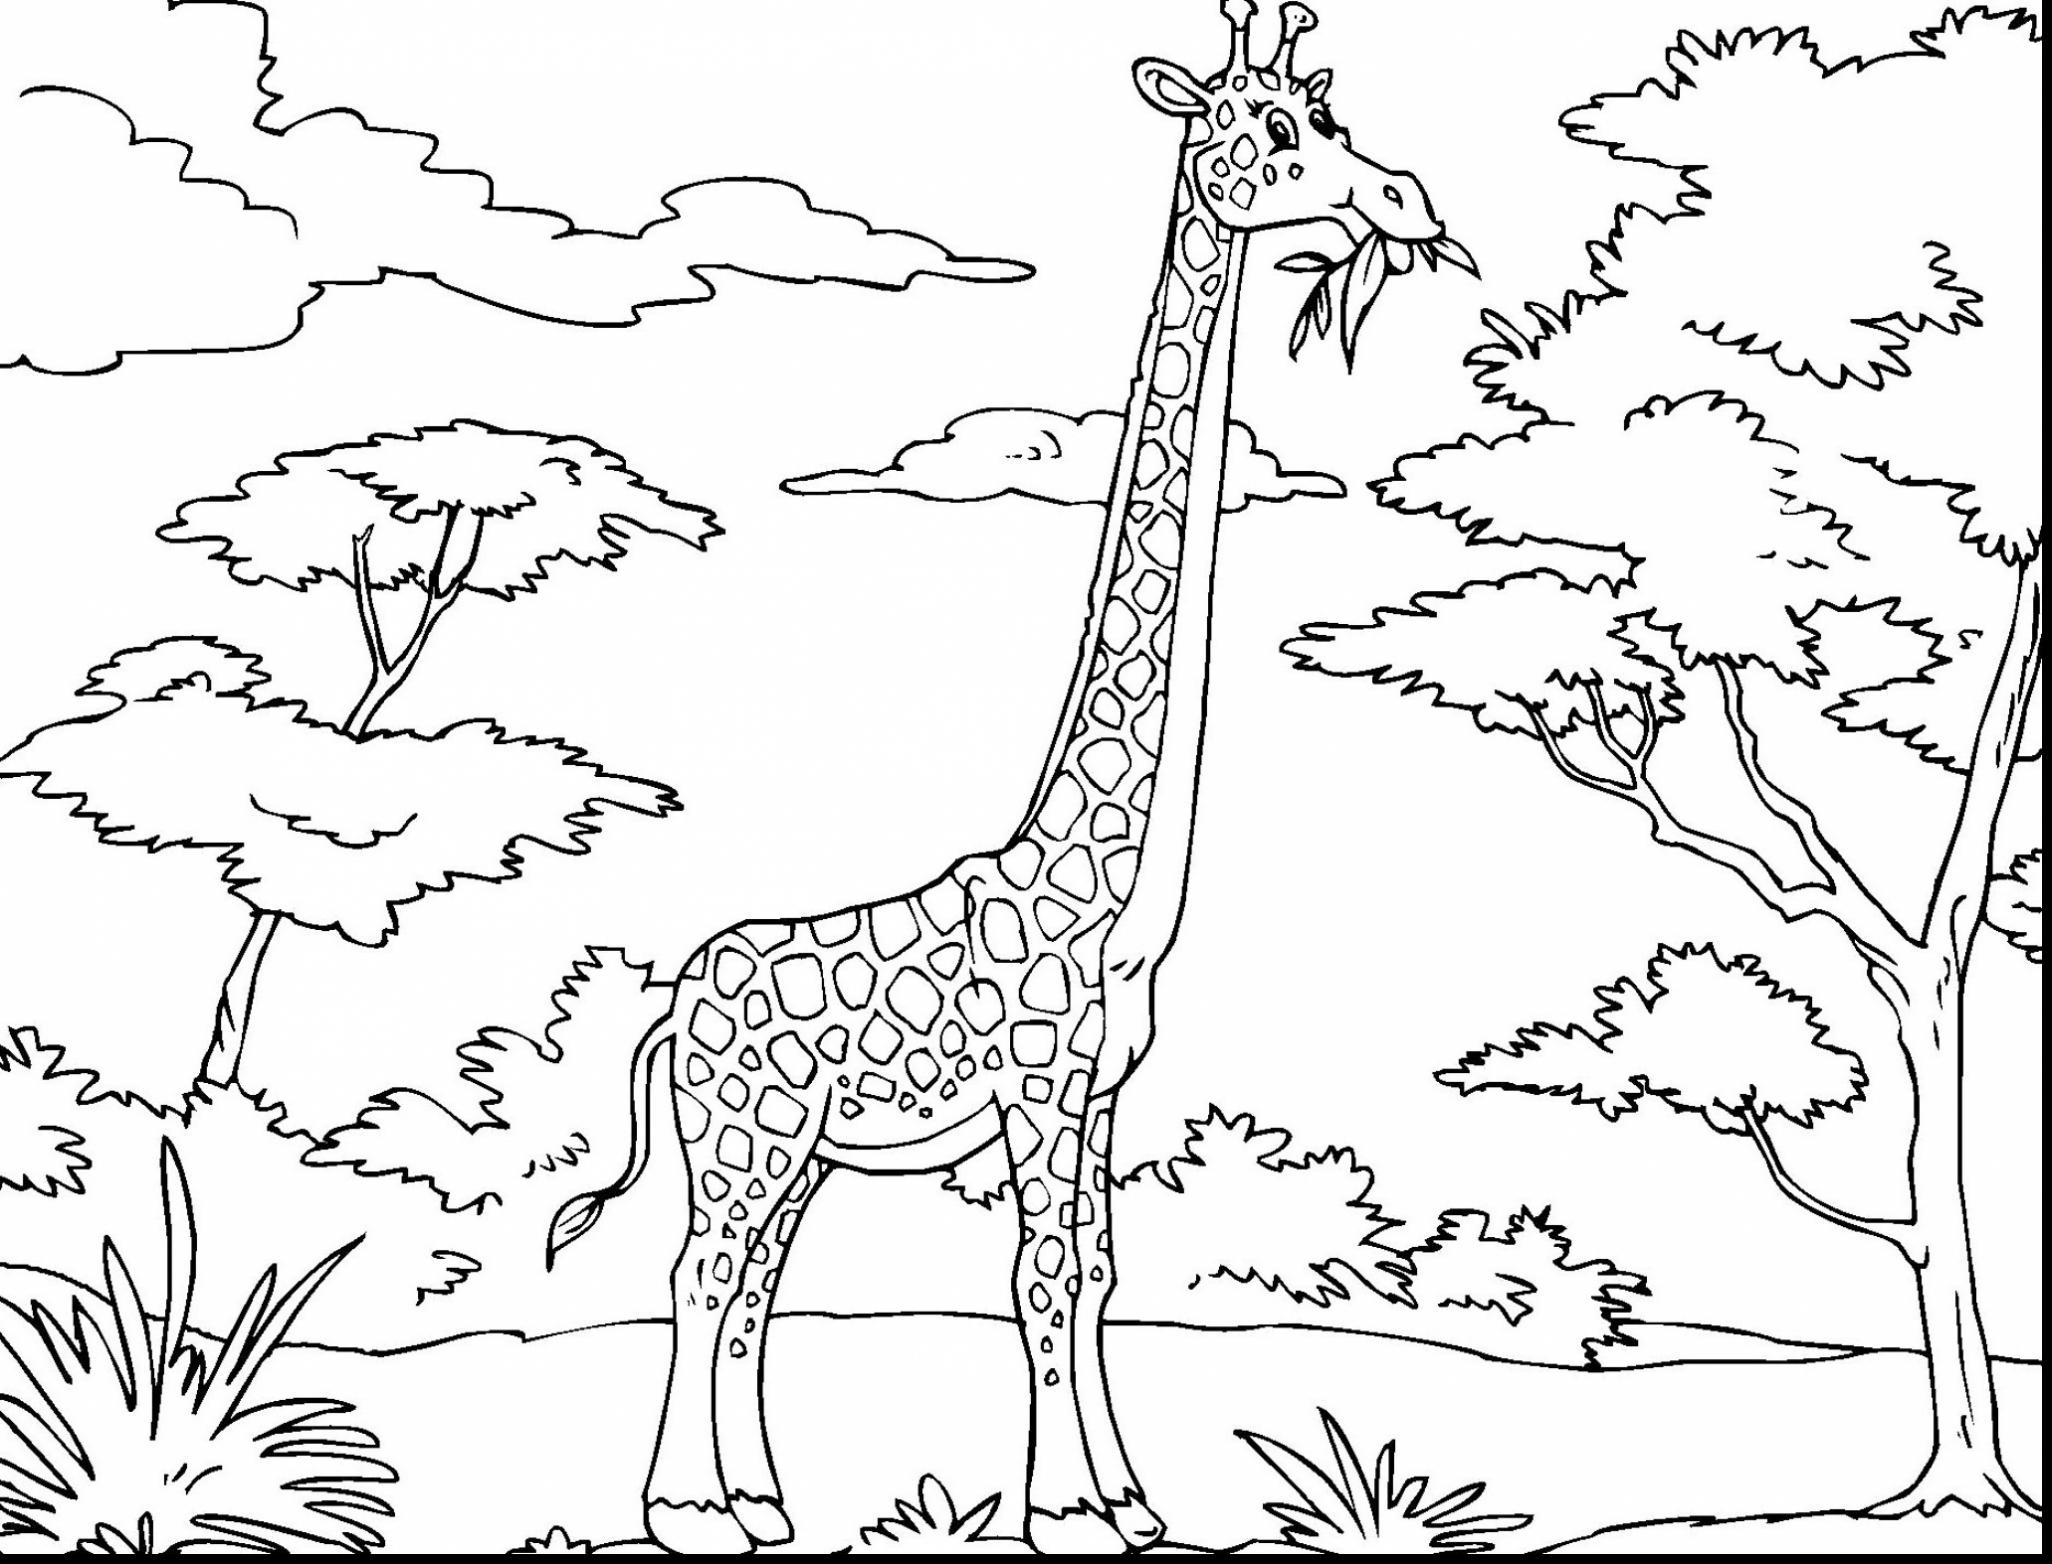 2052x1564 Impressive Pictures Of Giraffes To Color 20